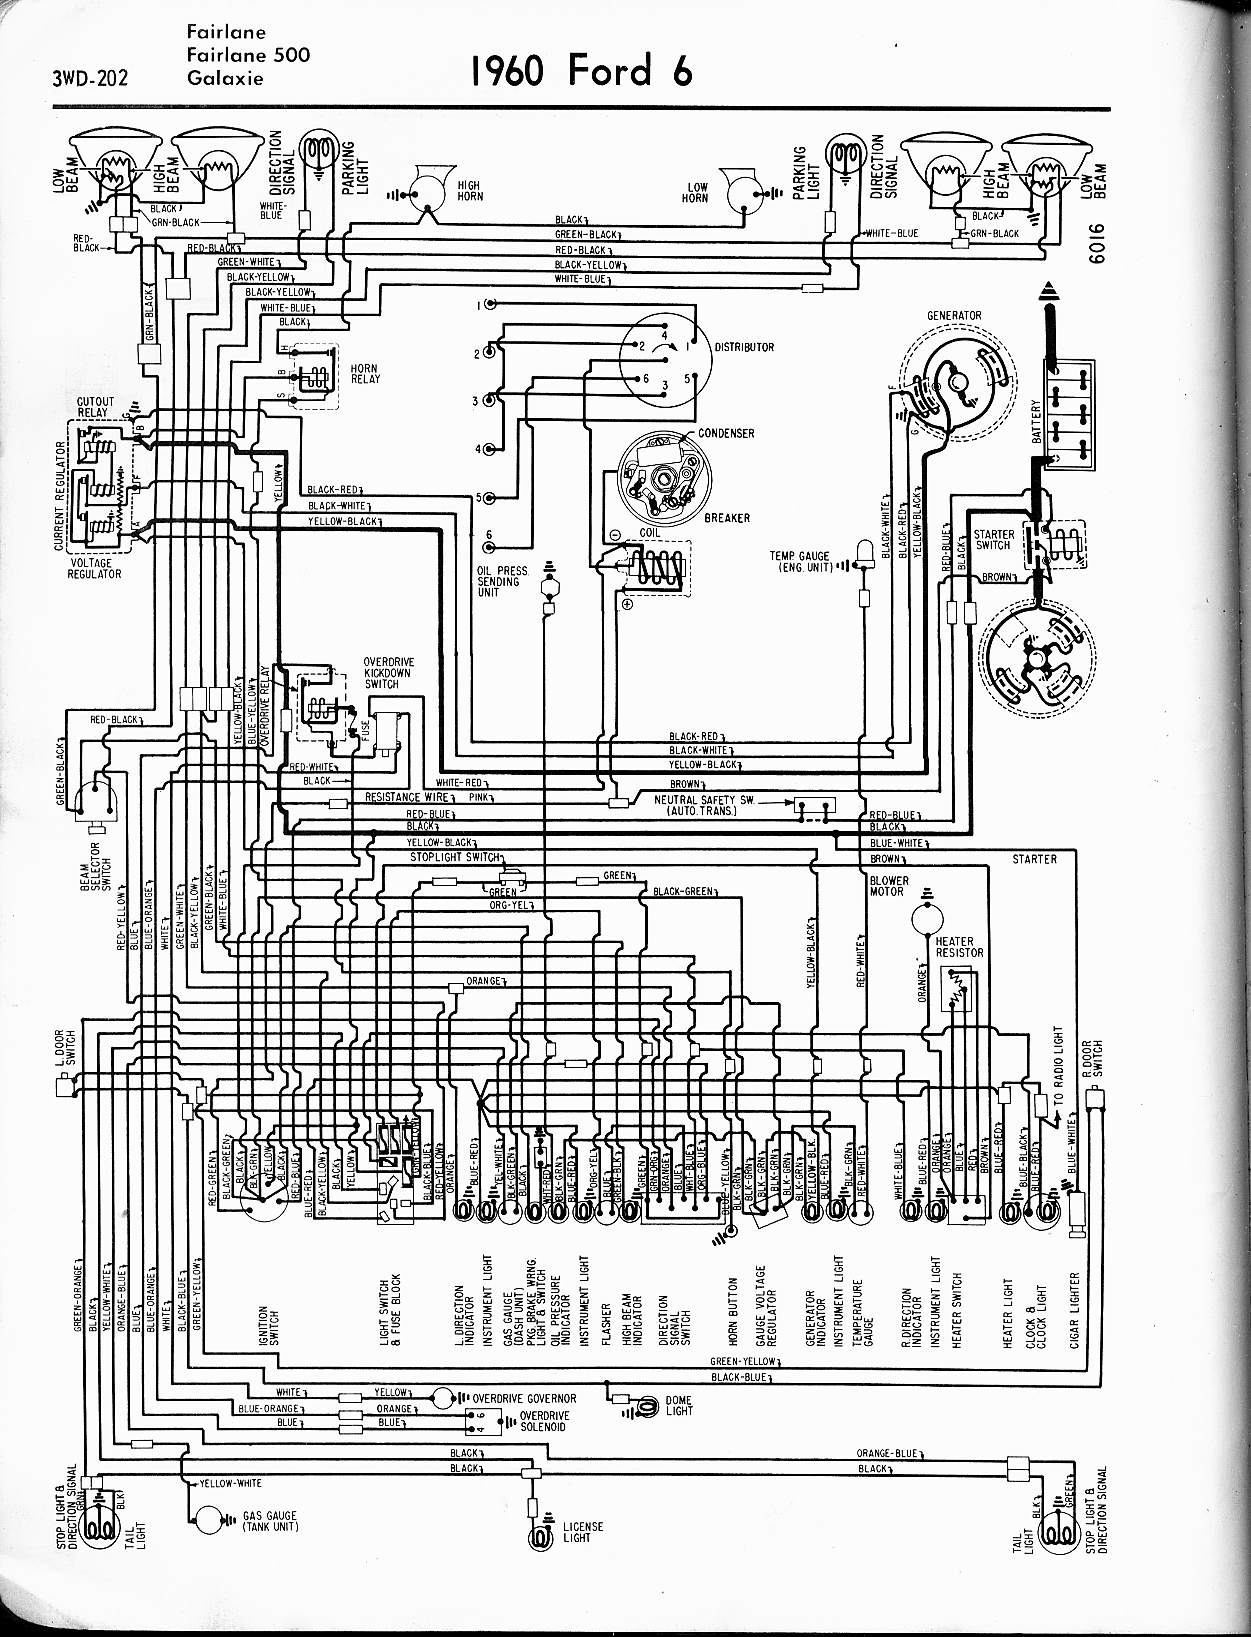 1960s Ford Fairlane on 1966 ford wiring diagram